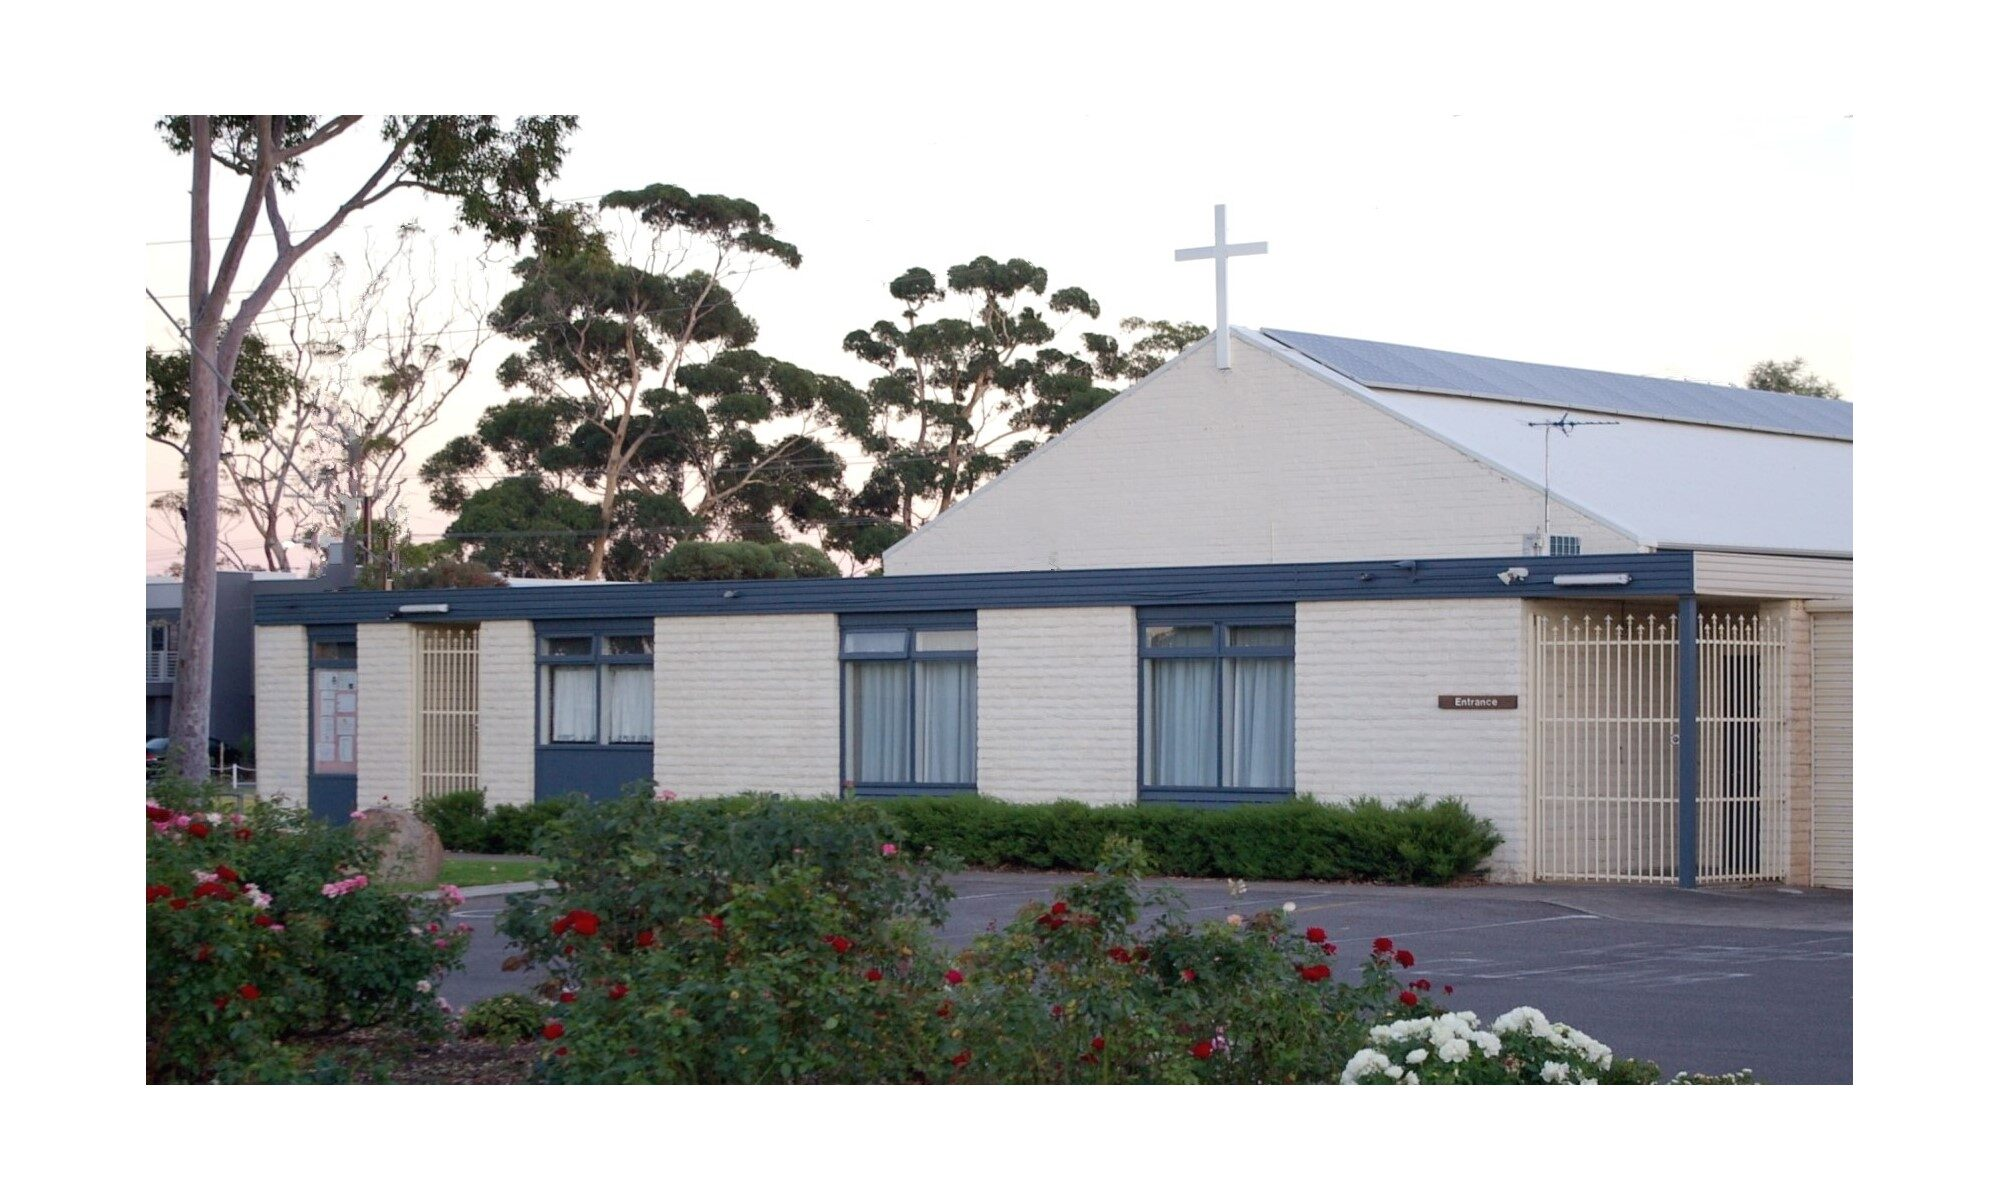 THE ANGLICAN PARISH OF WARRADALE